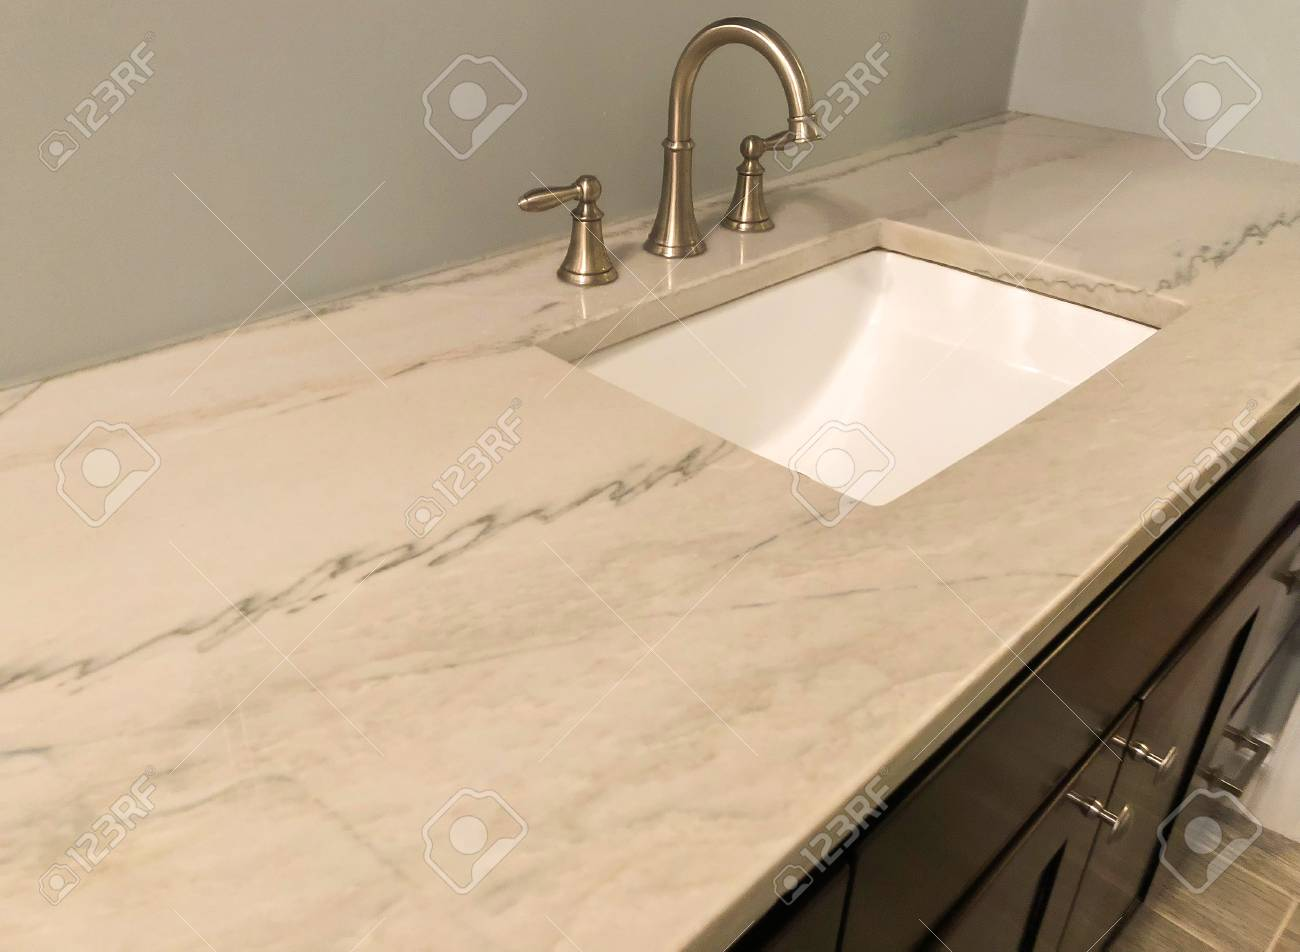 Bathroom Granite Counter Top Stock Photo Picture And Royalty Free Image Image 125498650